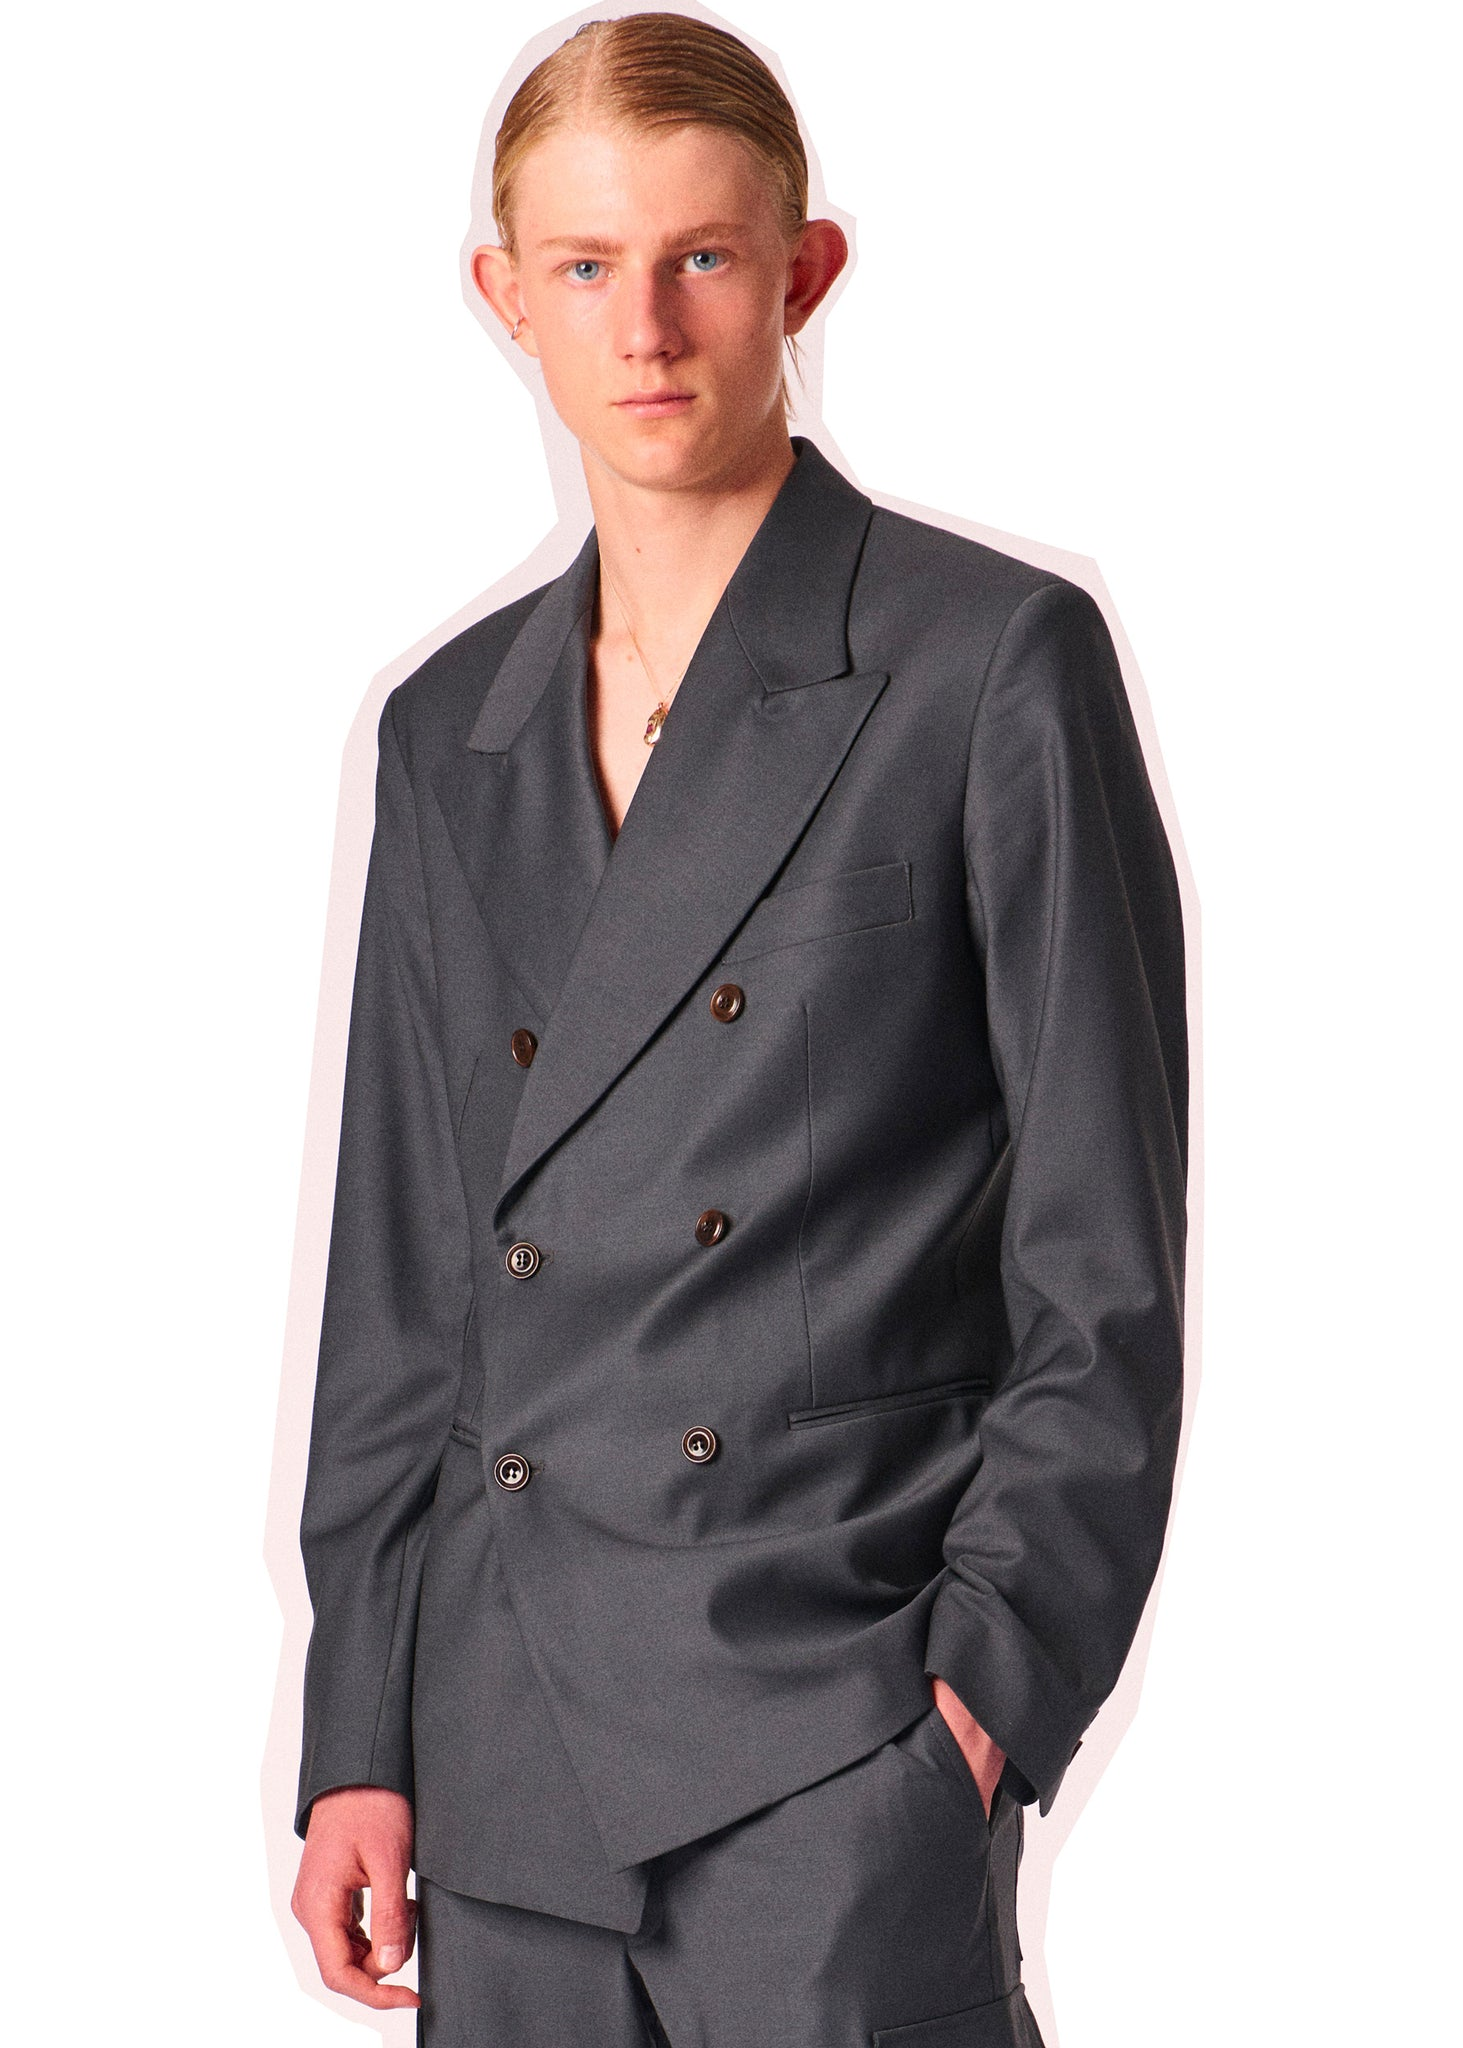 Martin Asbjørn ken blazer in dark grey